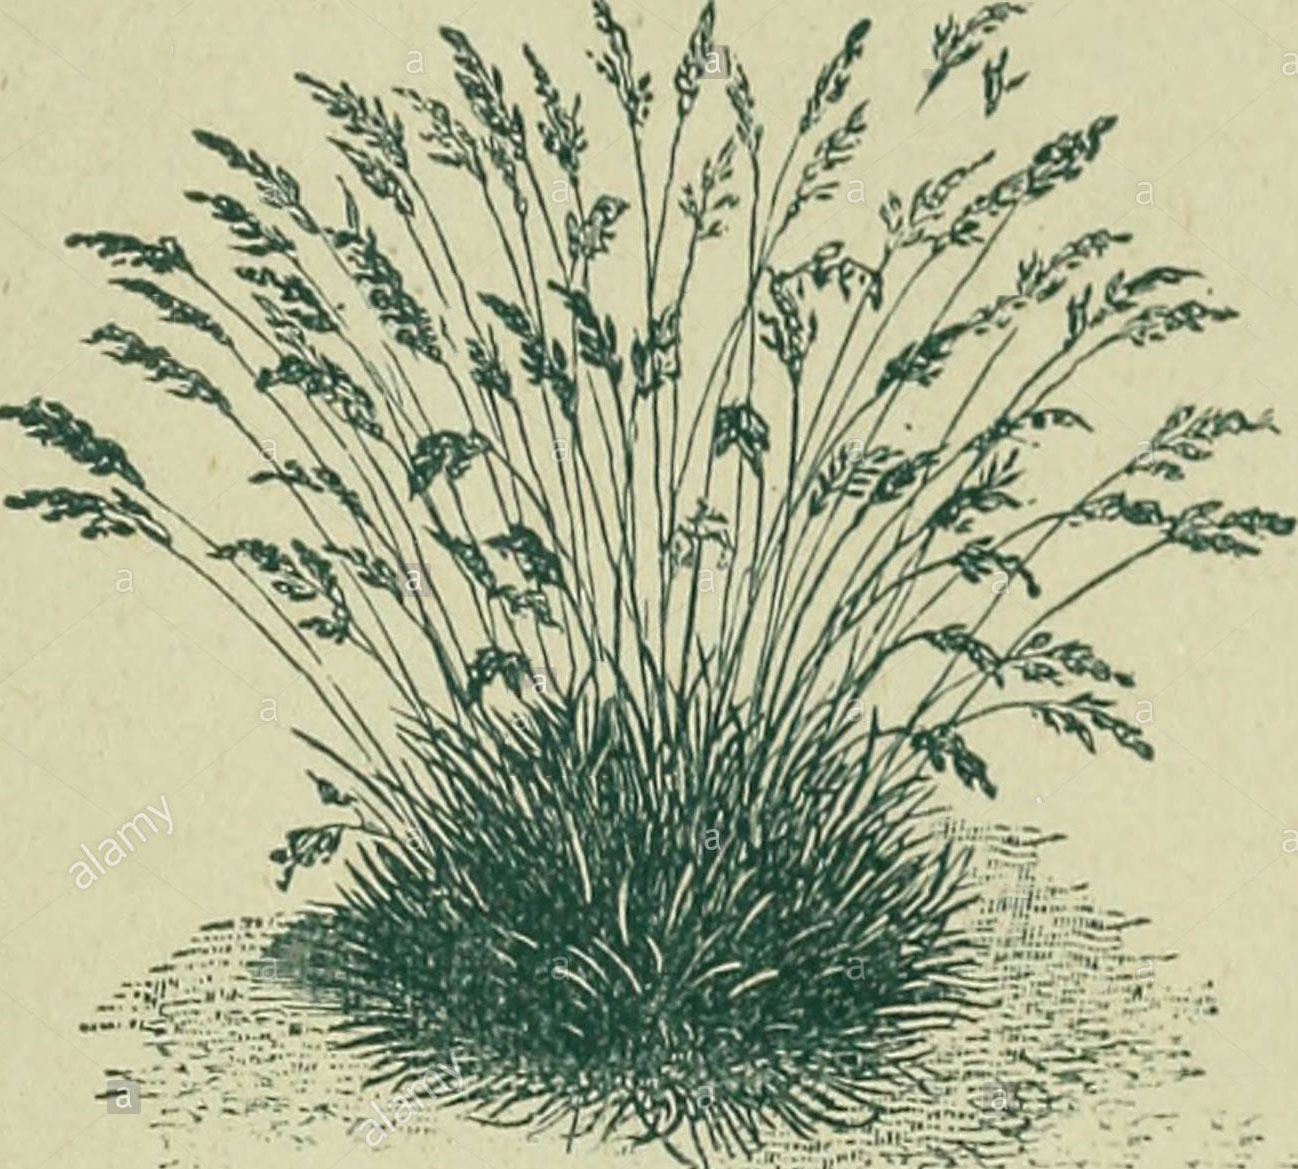 Sketch-of-Sheep-fescue